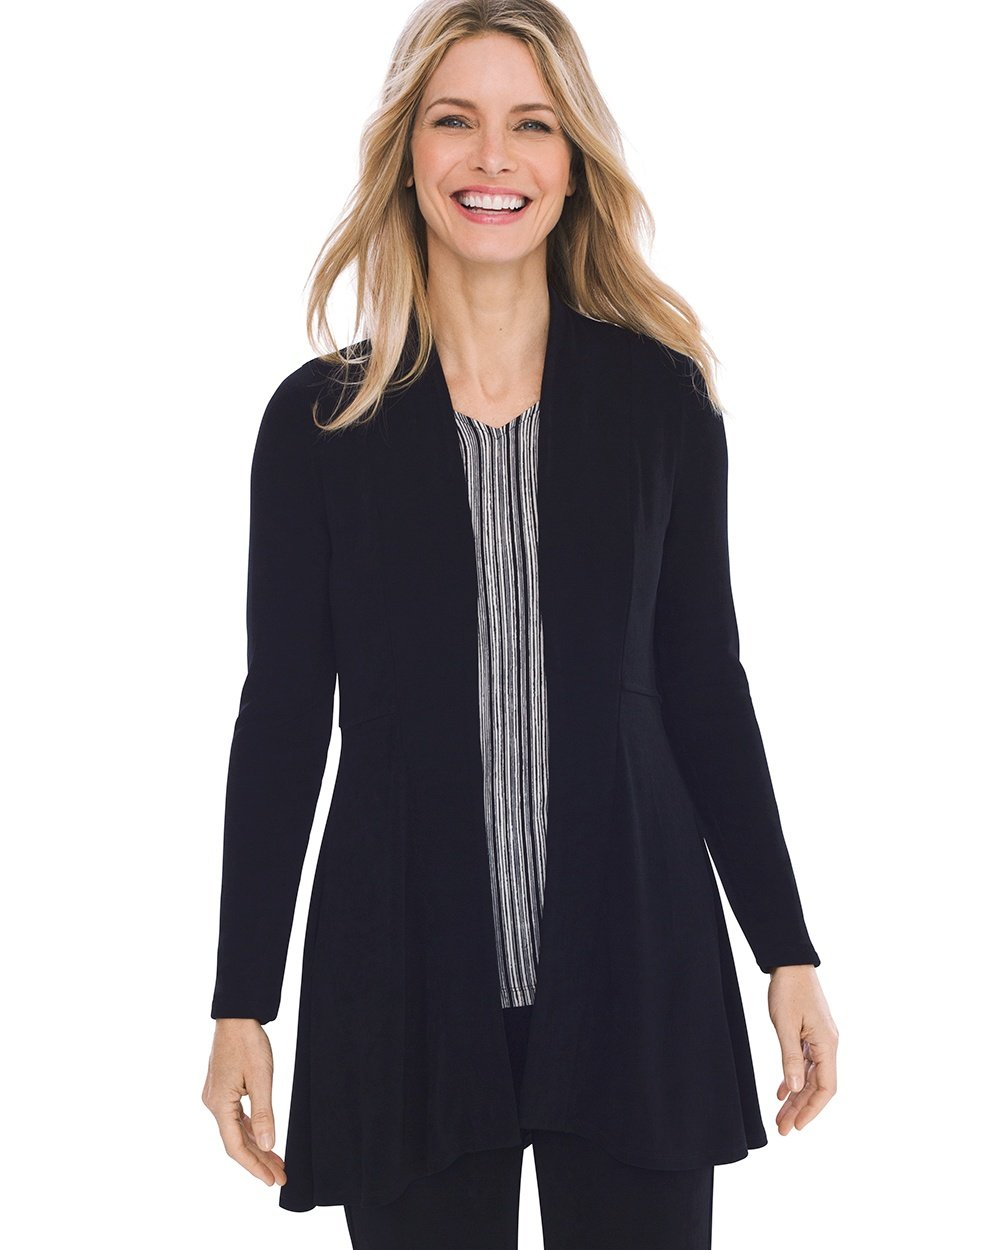 Chico's Women's Travelers Classic High-Low Jacket Size 12/14 L (2) Black